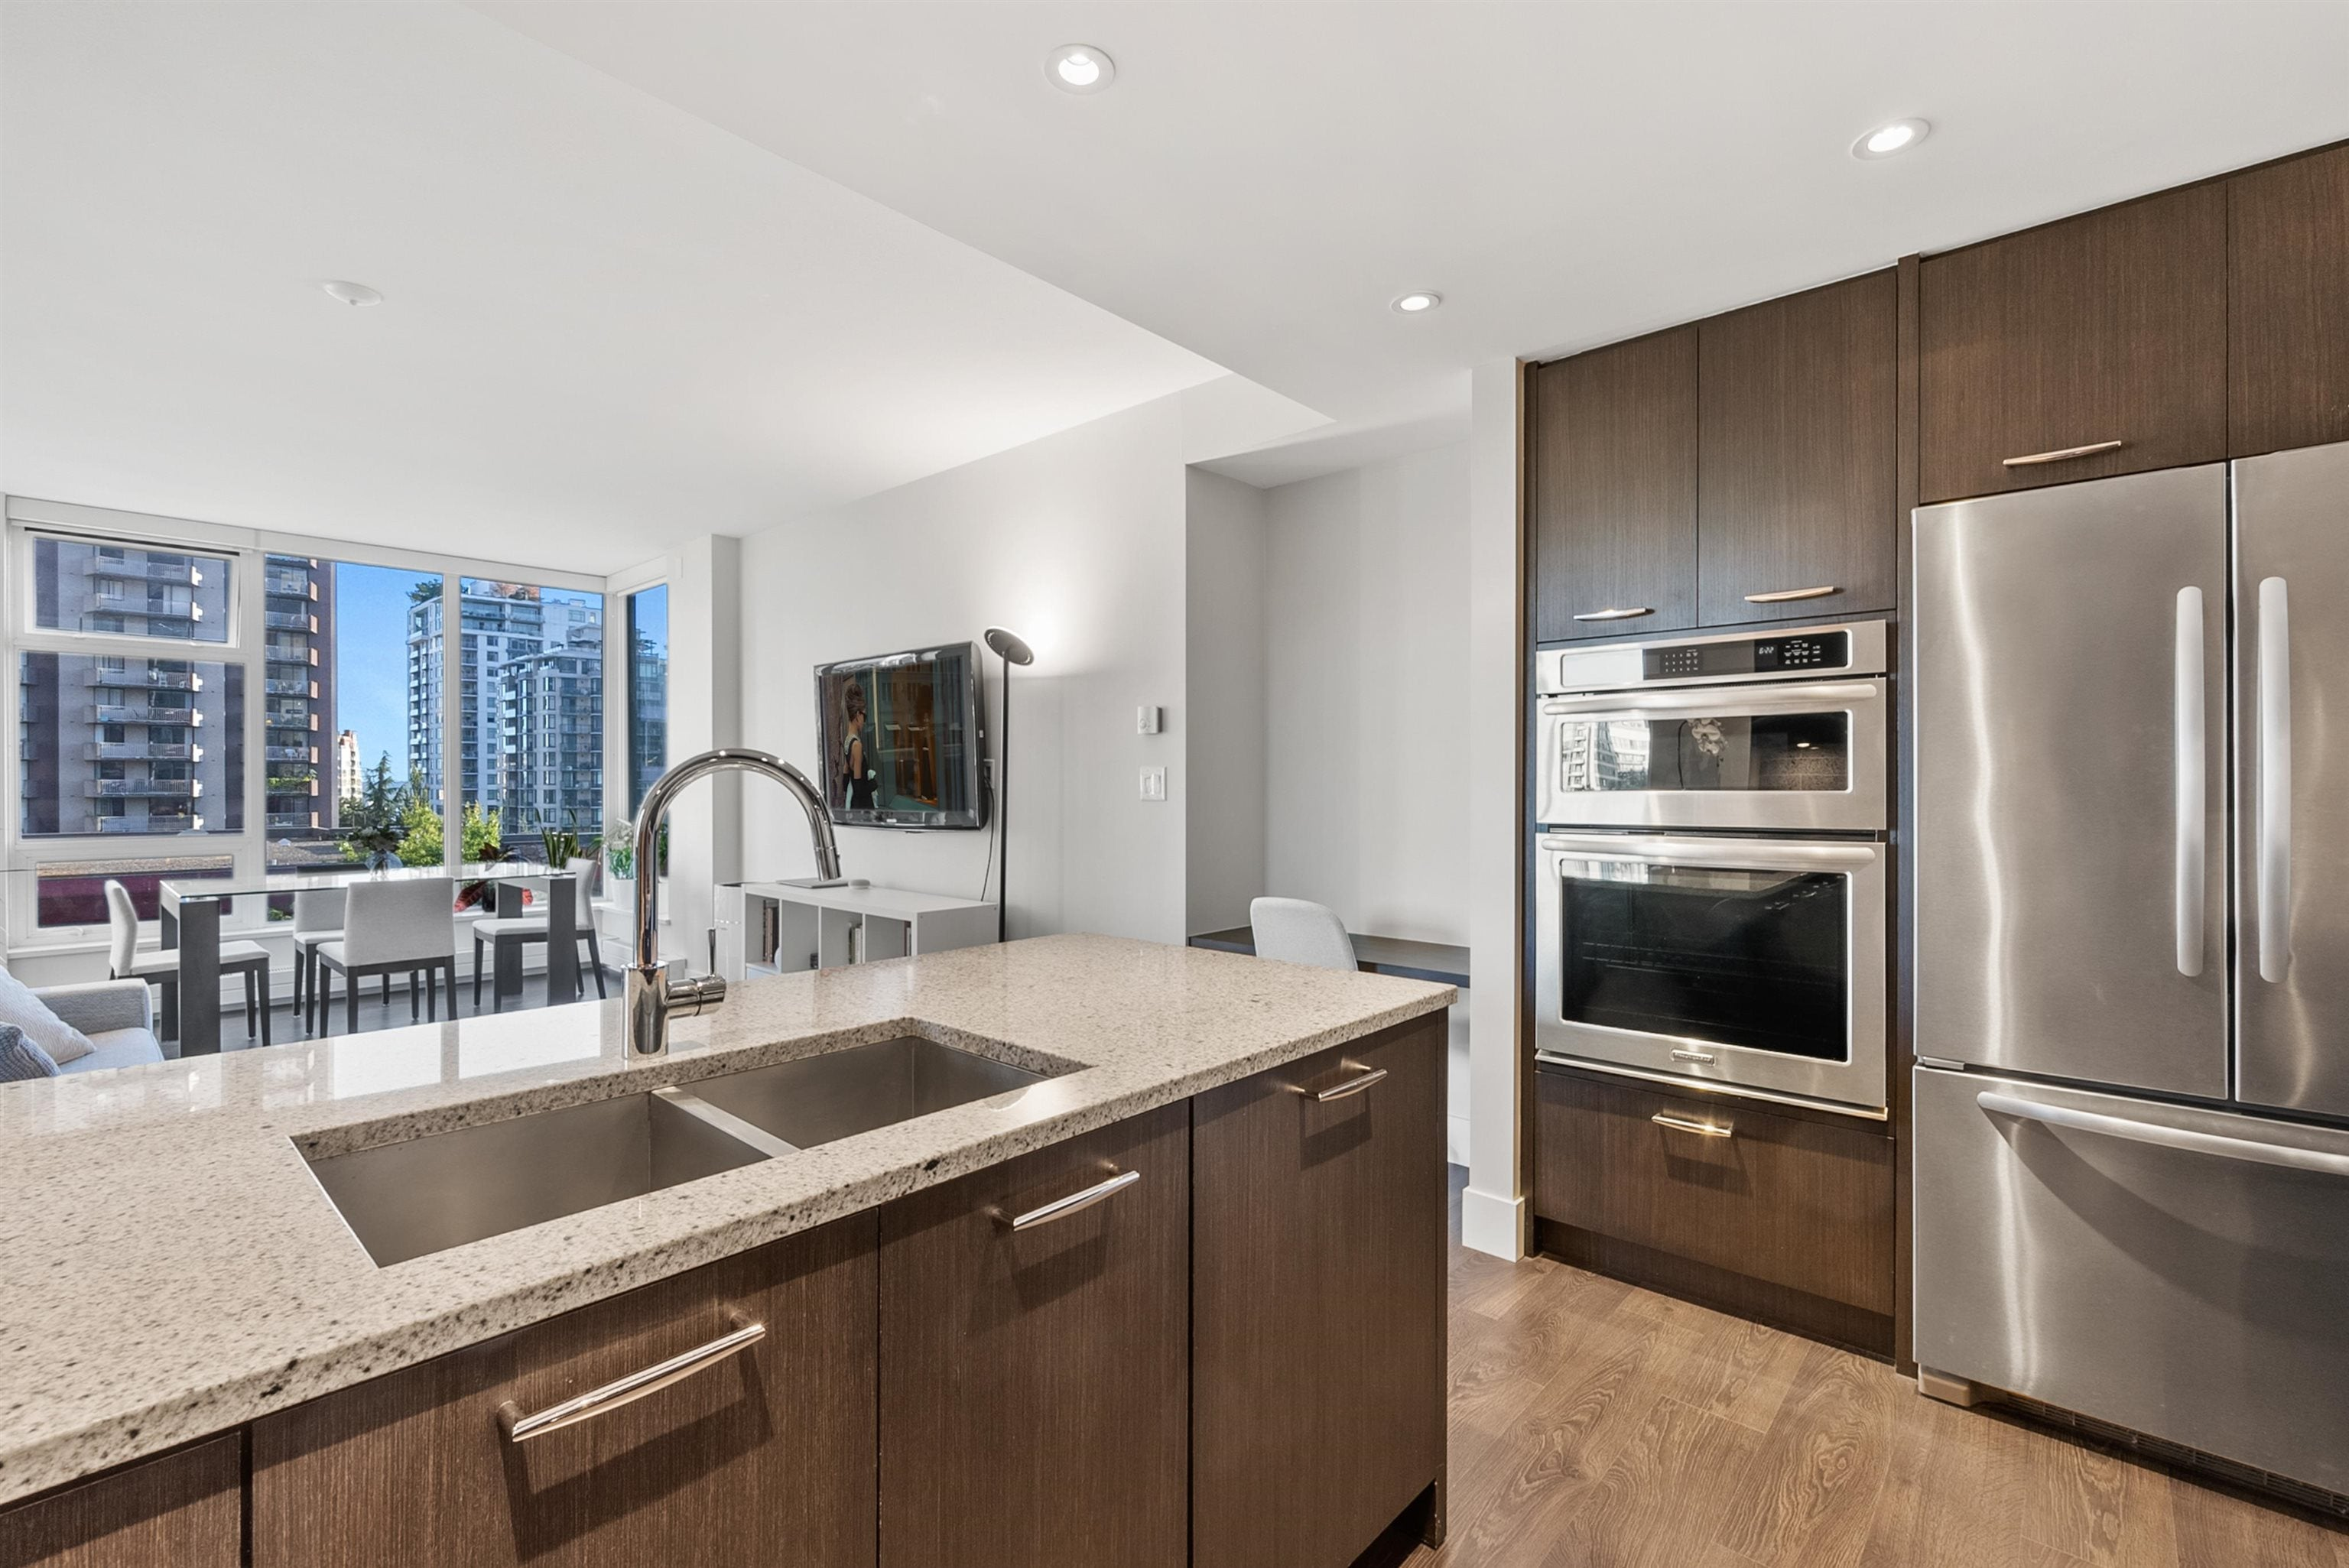 503 150 W 15TH STREET - Central Lonsdale Apartment/Condo for sale, 2 Bedrooms (R2624732) - #12